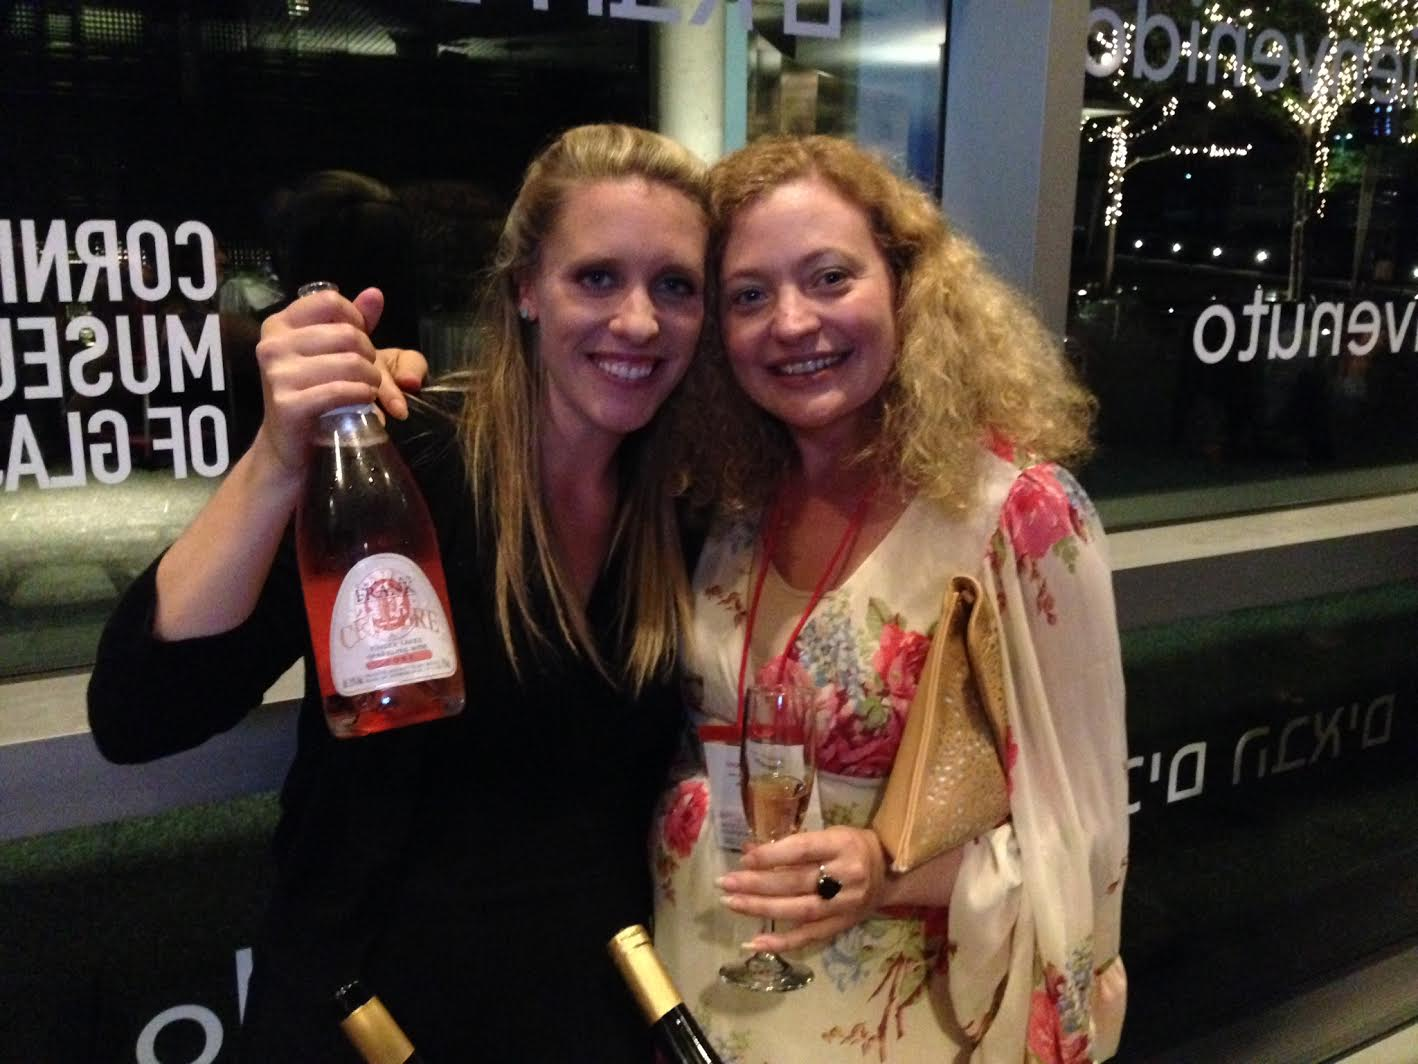 Meaghan Frank and Joanna Snawder enjoying a sparkler from Chateau Frank. Photo credit Gabriel Manzo